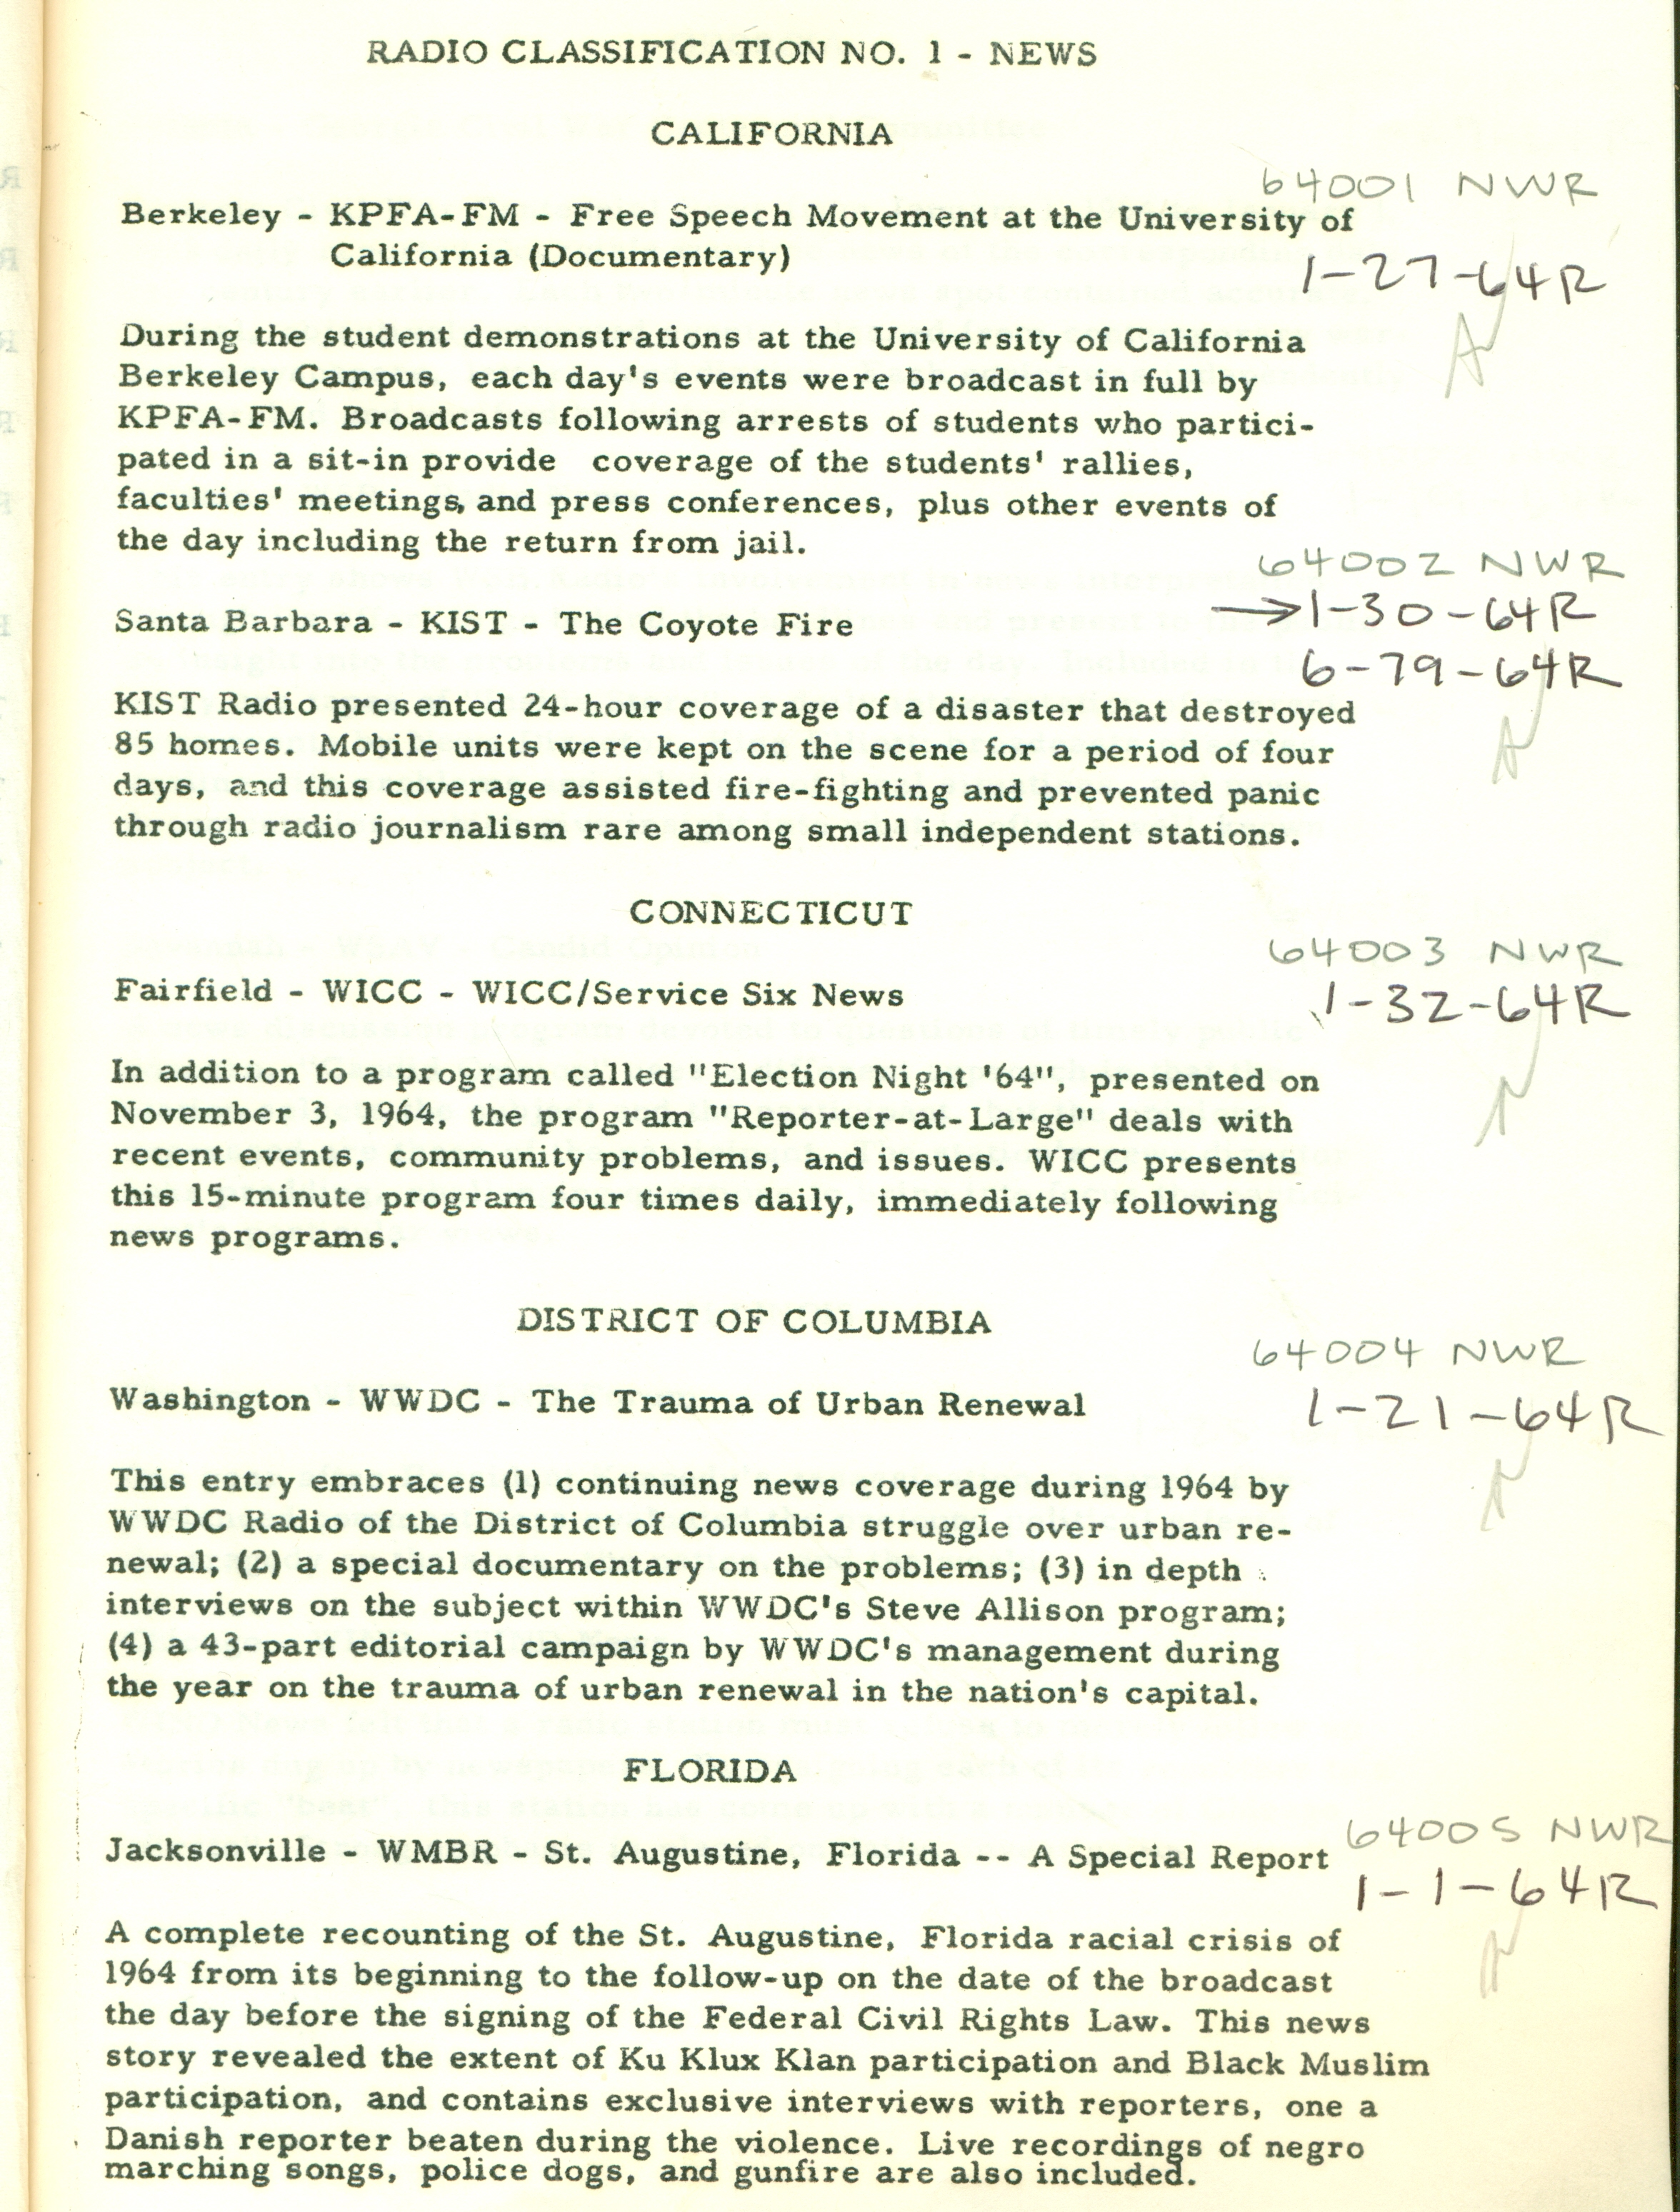 Example of Peabody Awards entry digest, News category, 1964, George Foster Peabody Awards records, ms3000, Hargrett Rare Book and Manuscript Library, University of Georgia Libraries.